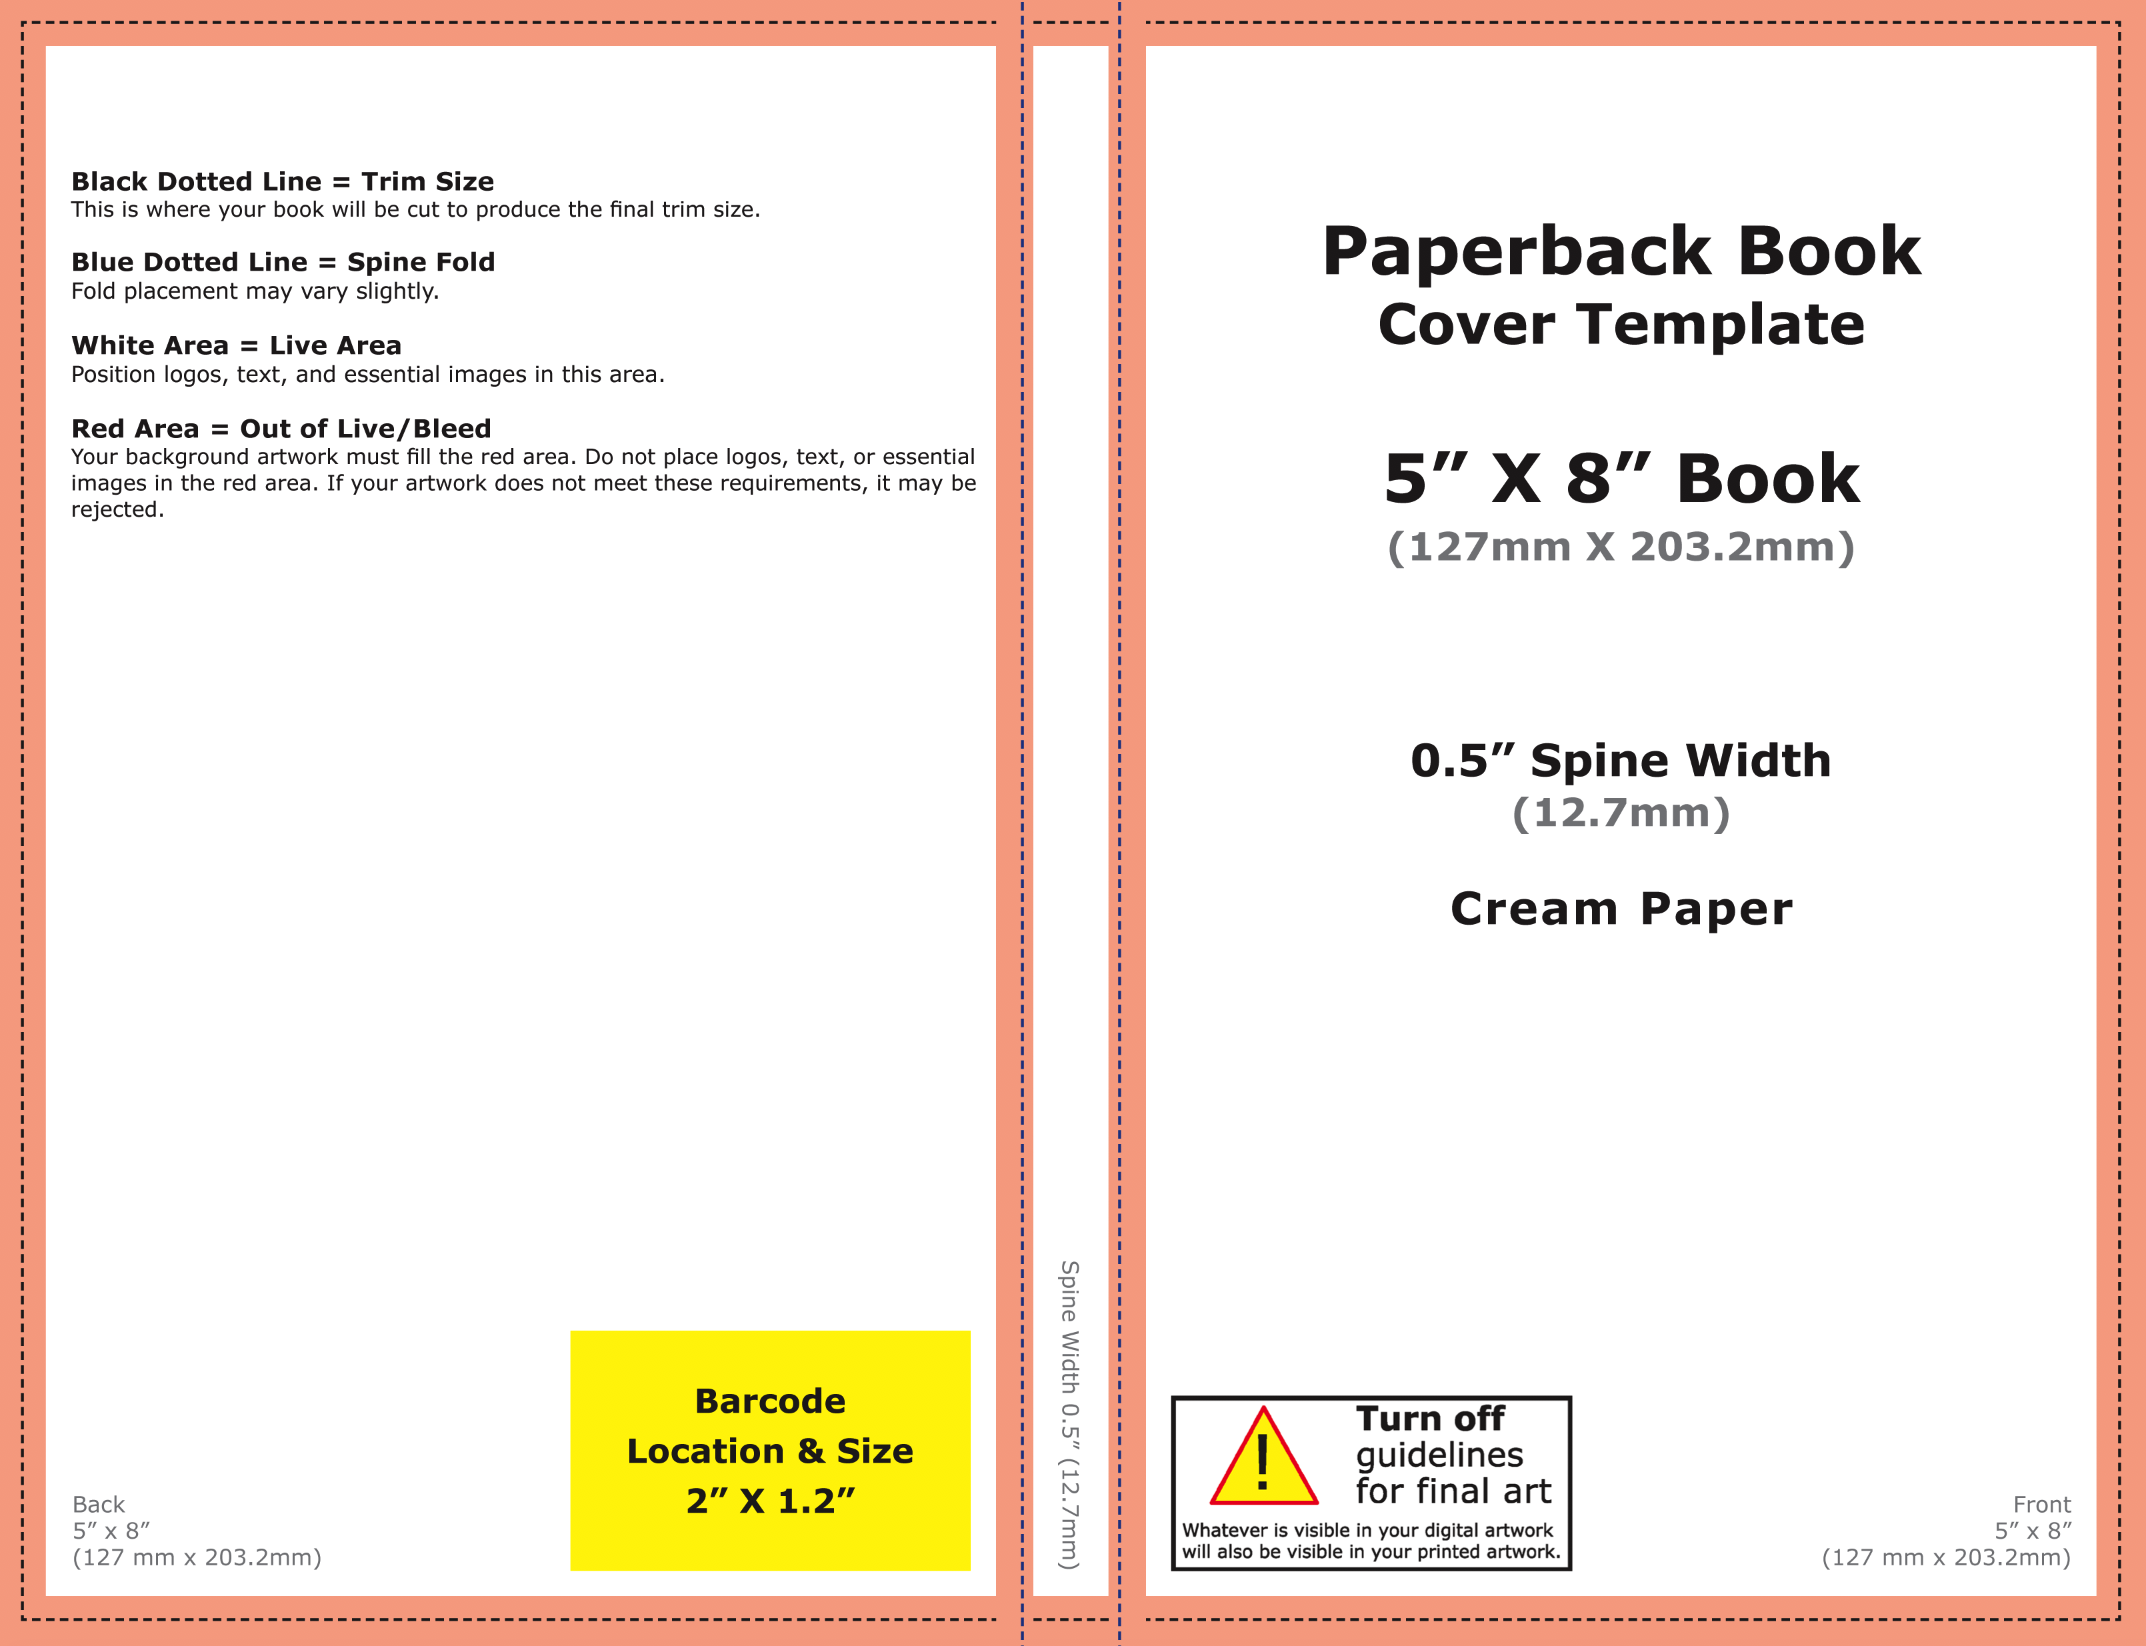 How To Get The Best Paperback Cover You Can With CreateSpace Self